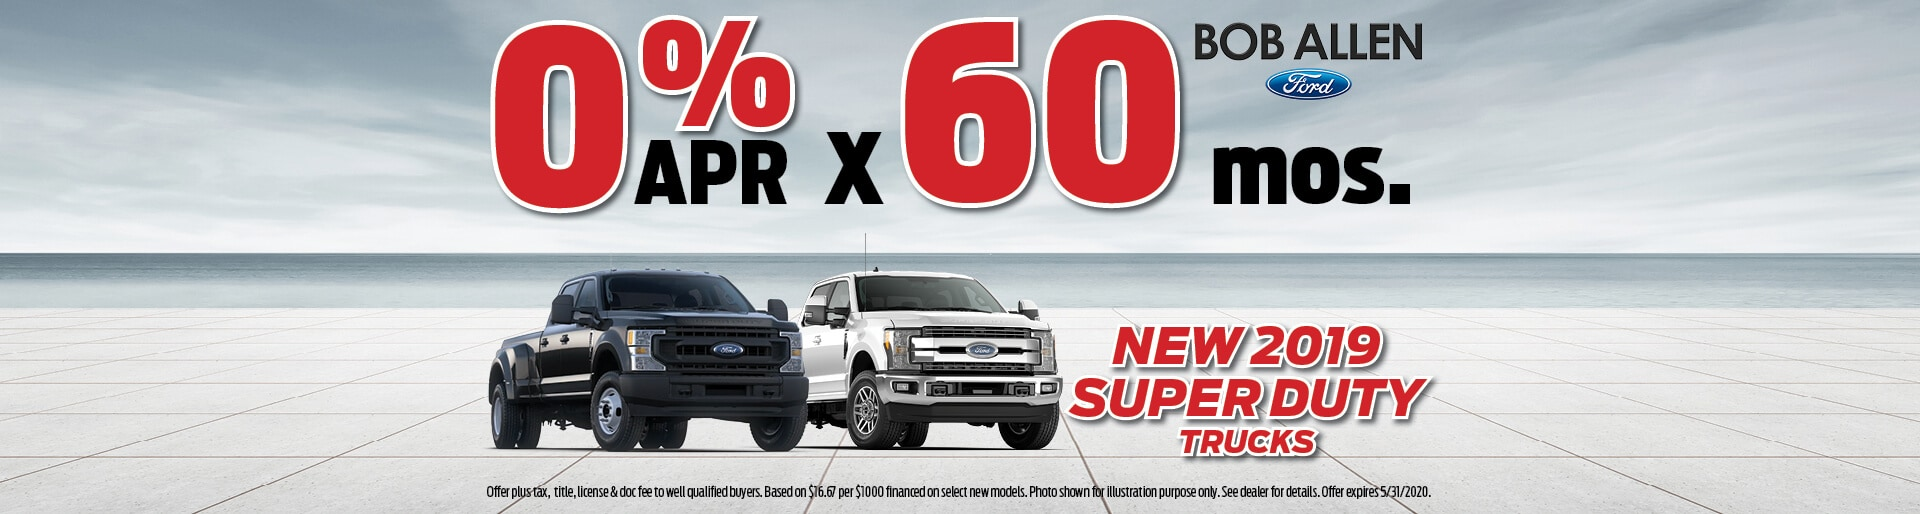 0% APR x 60 mos. on 2019 Superduty Trucks